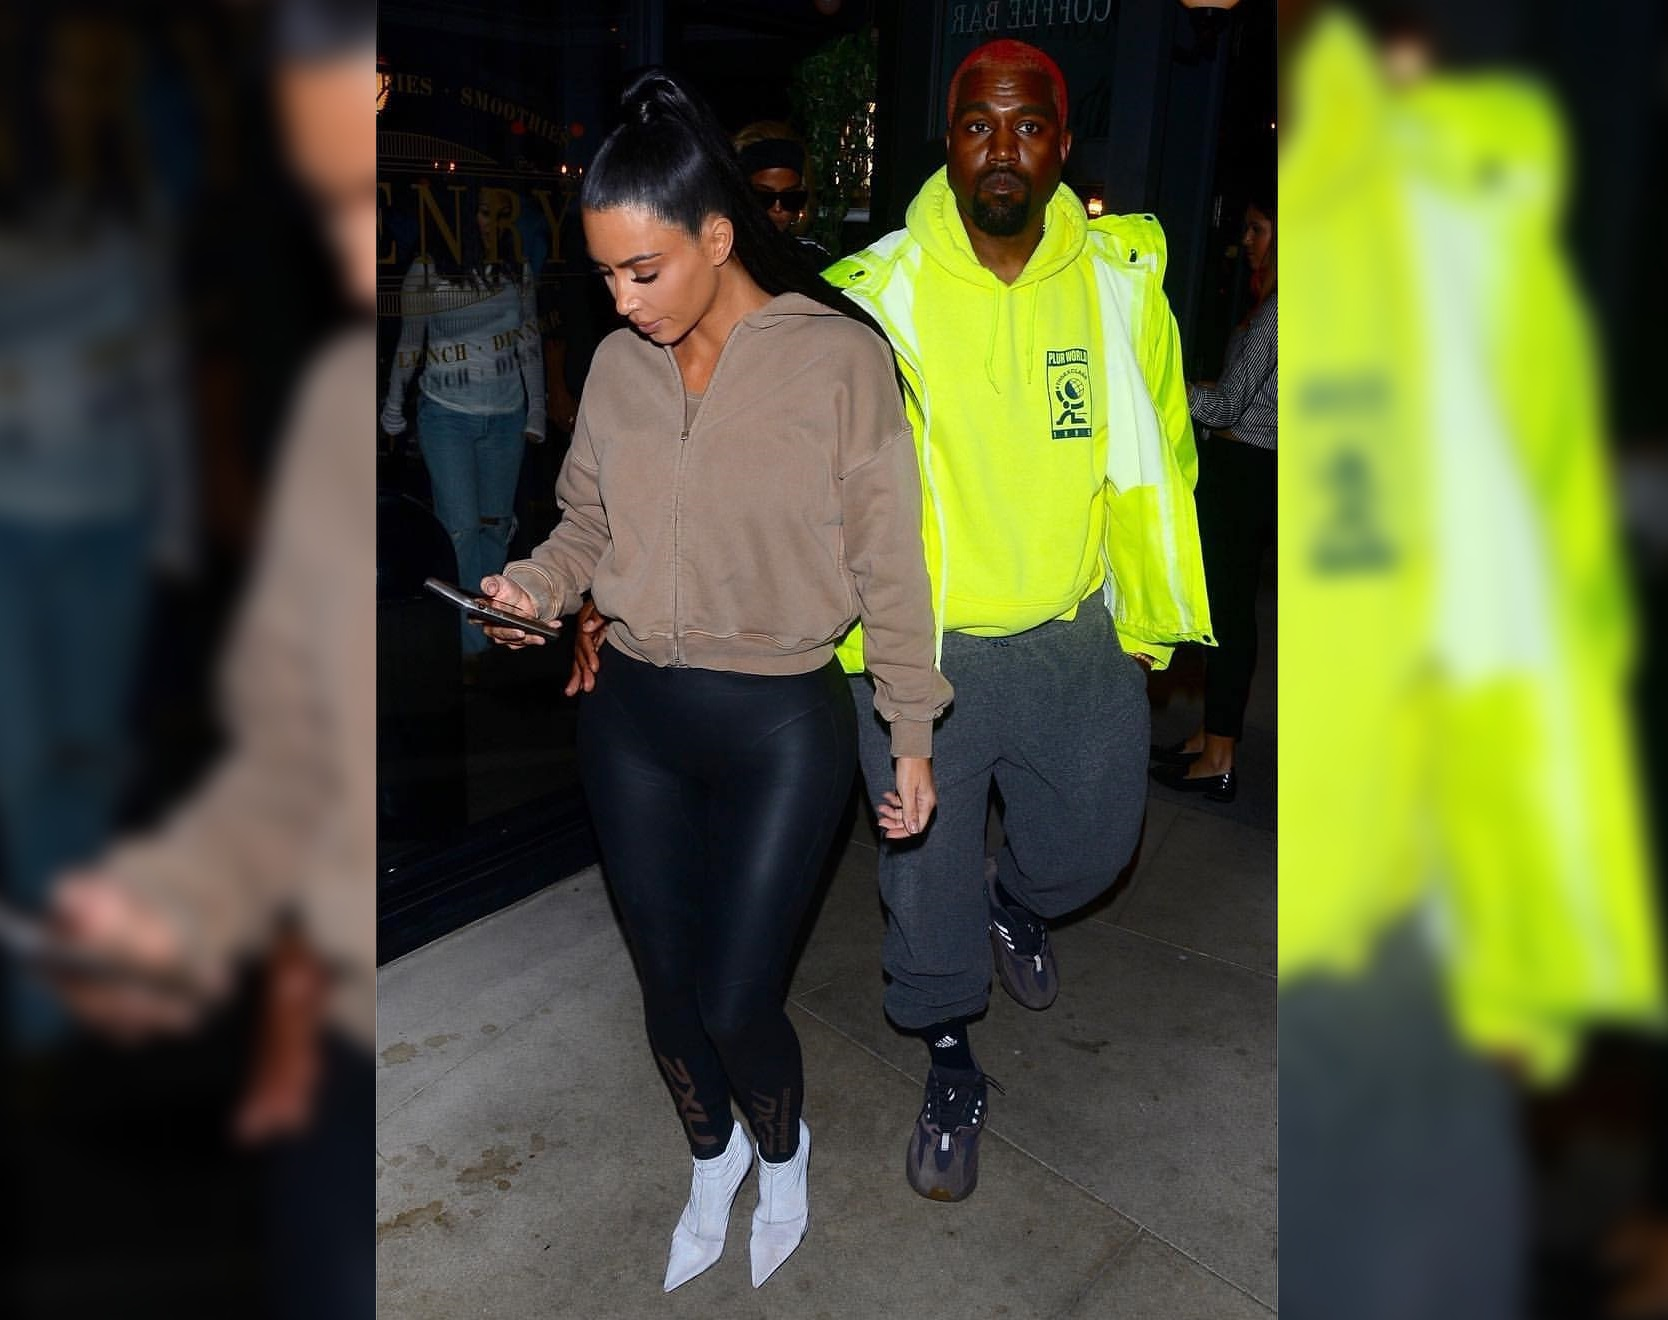 SPOTTED: Kanye West and Kim Kardashian Go for Contrasting Bold and Subtle Aesthetics